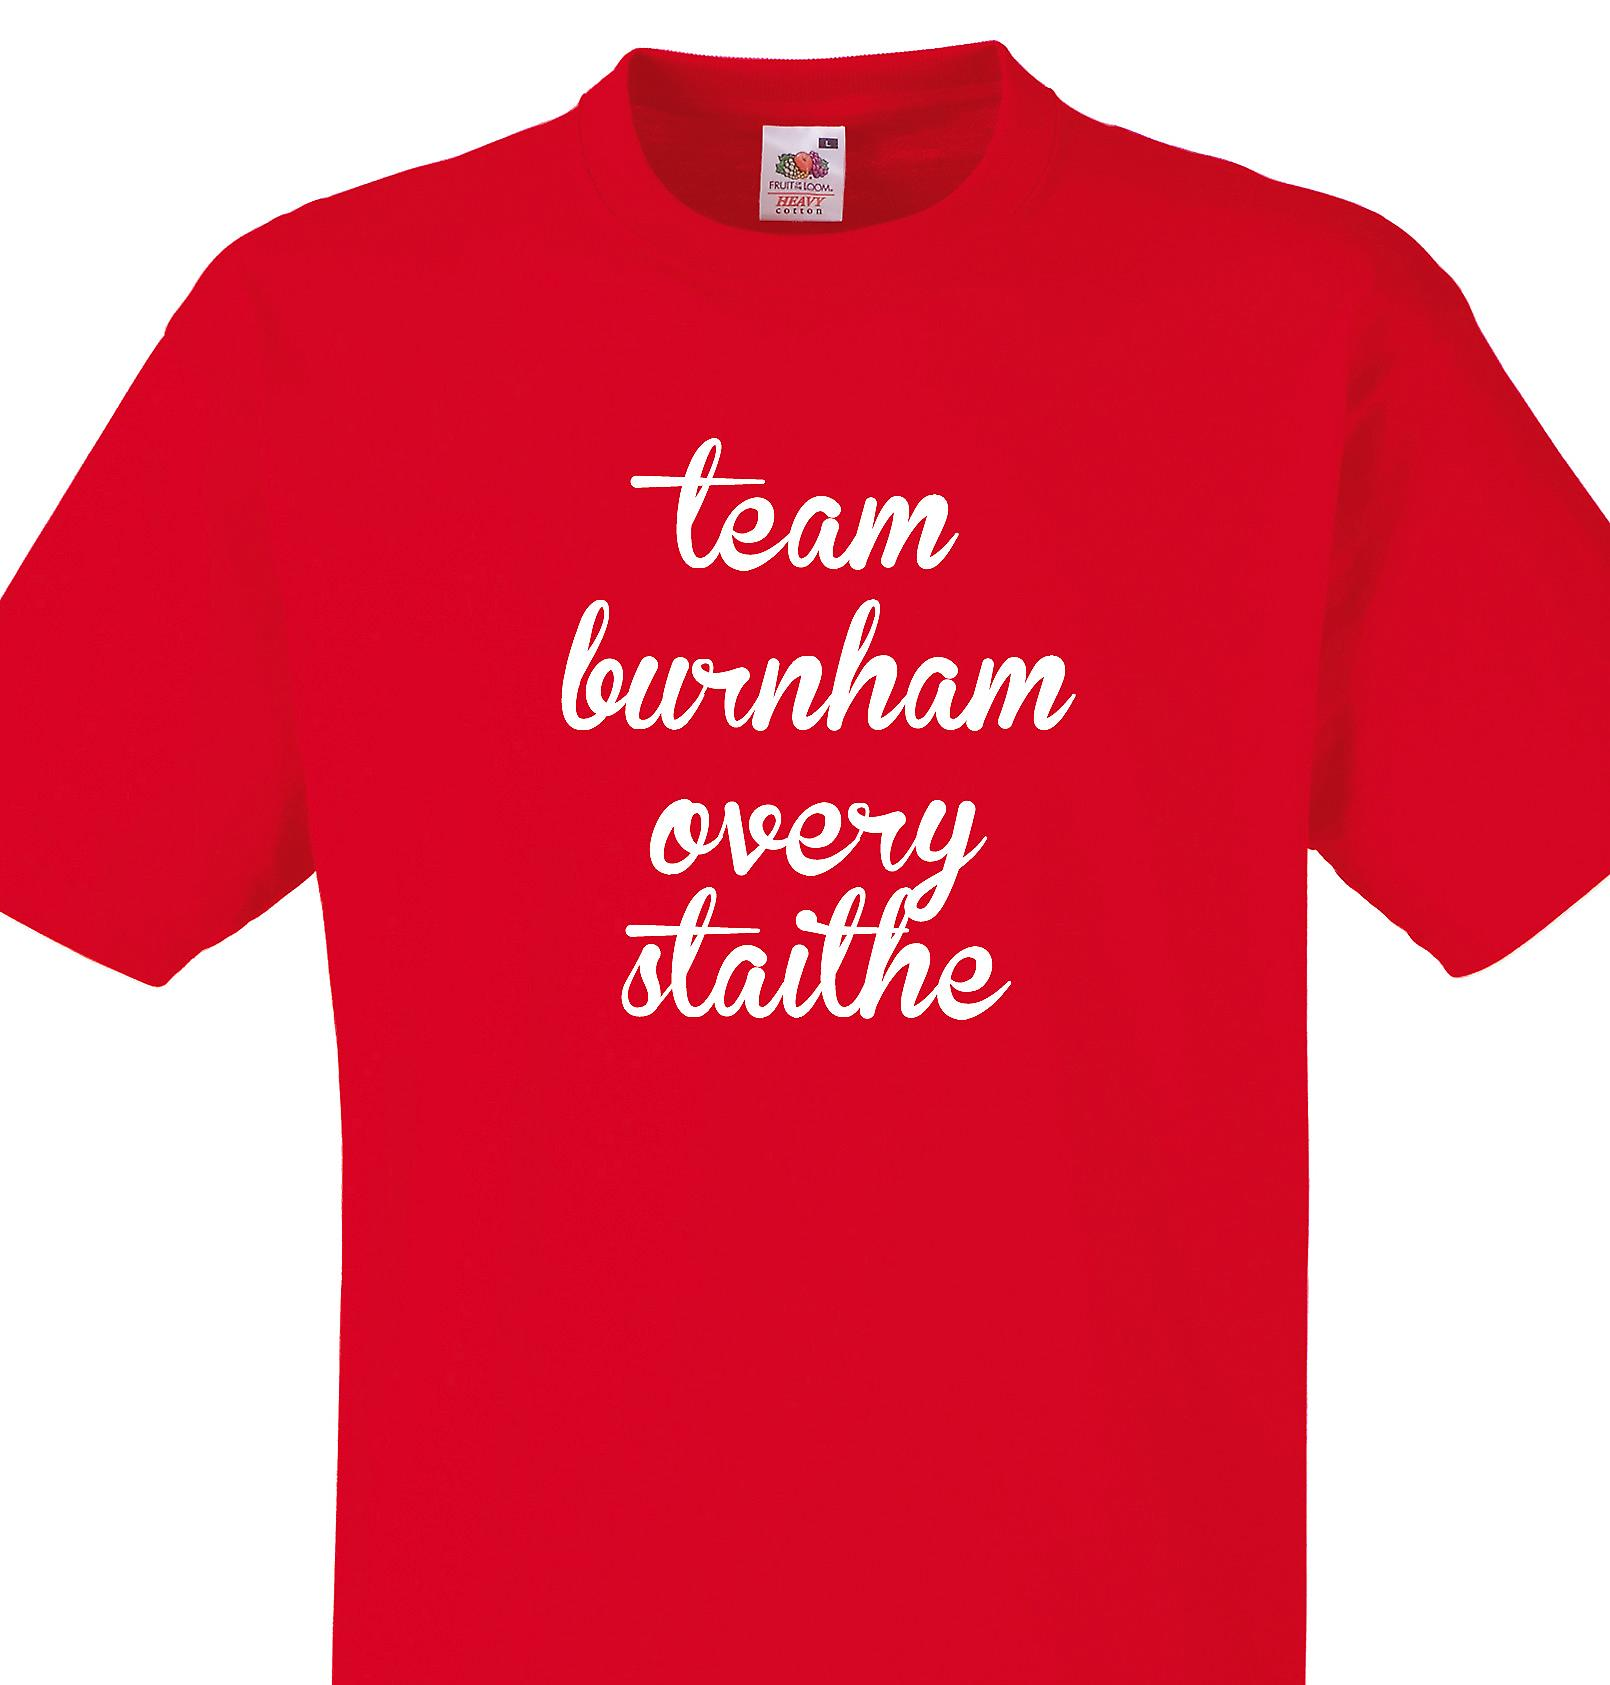 Team Burnham overy staithe Red T shirt